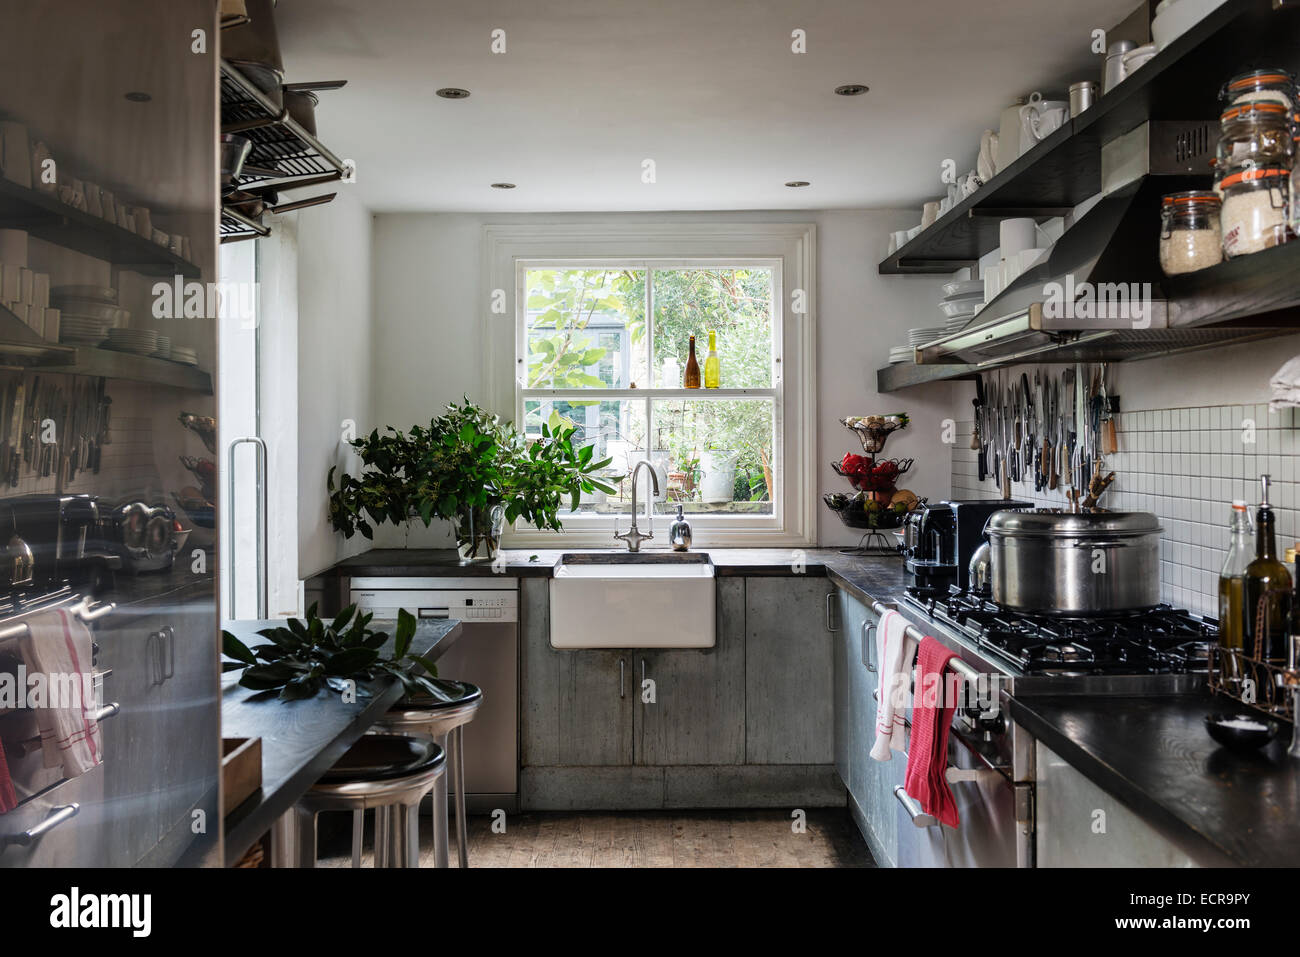 Contemporary kitchen with belfast sink, breakfast bar and open shelving - Stock Image